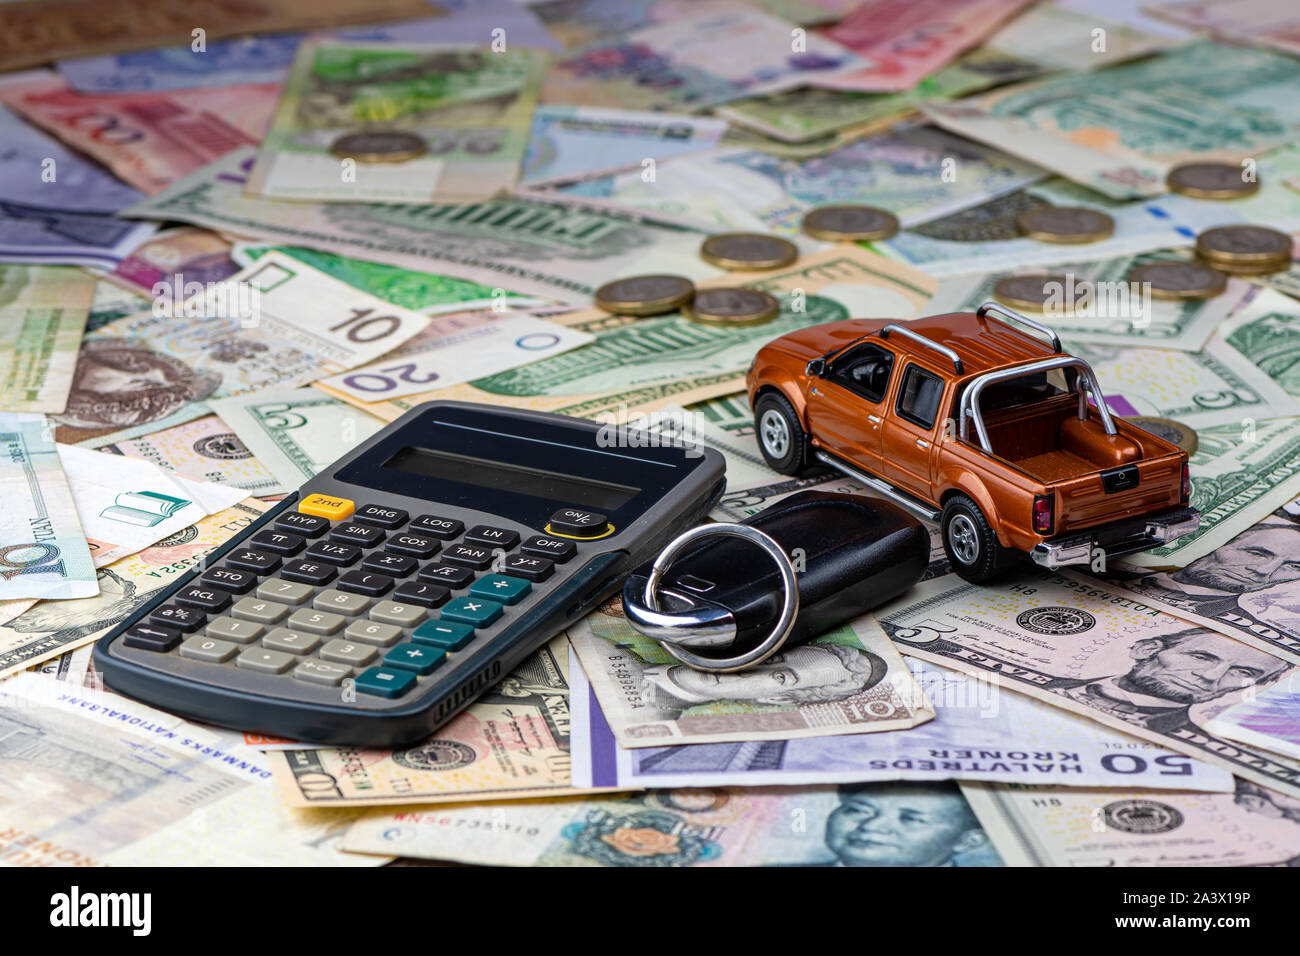 Renting A Pickup High Resolution Stock Photography And Images Alamy